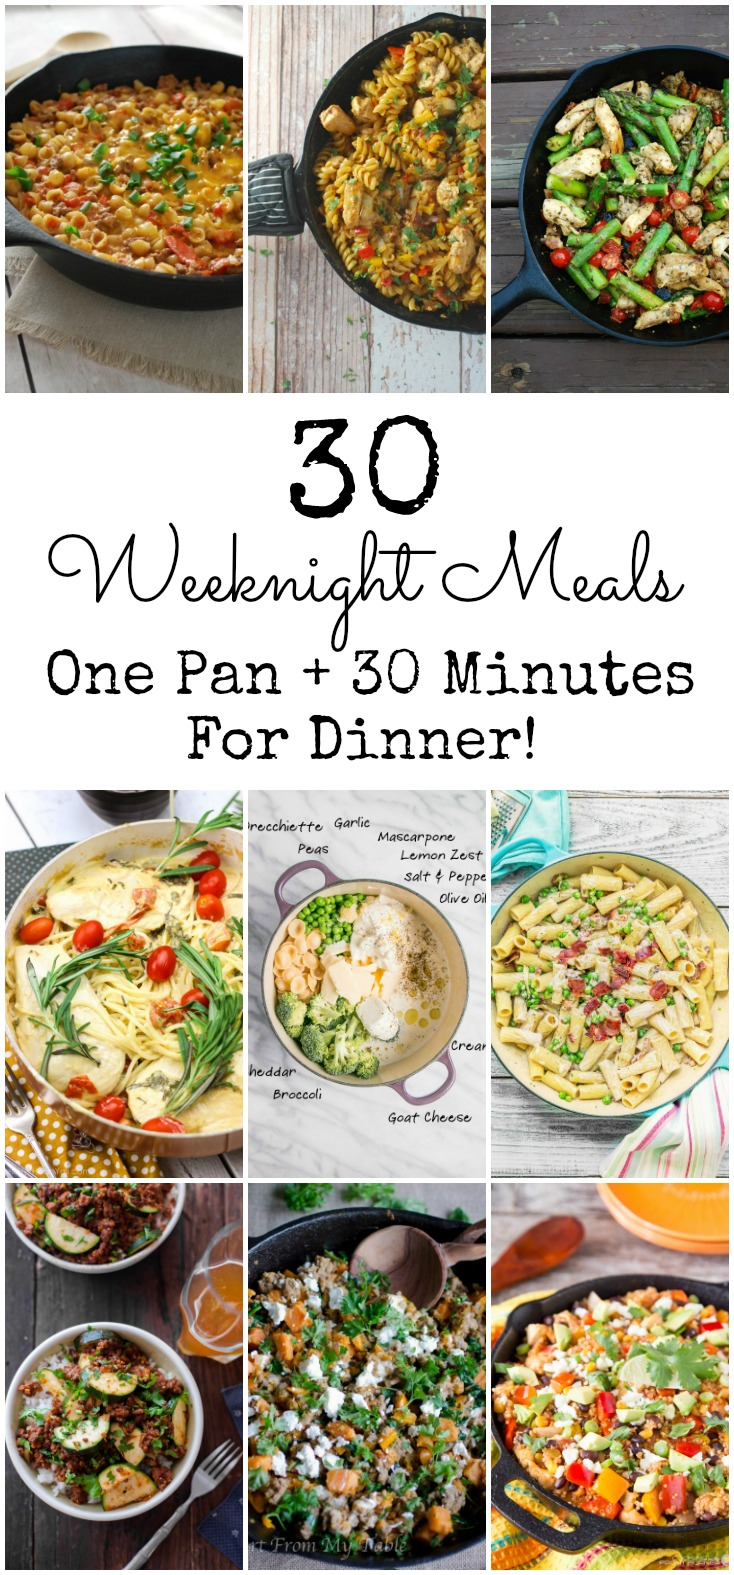 Need dinner inspiration? Here are 30 awesome meals that take one pan and 30 minutes! No funky ingredients!  30 Minute Meals, One Pan Recipe, Skillet Meal,